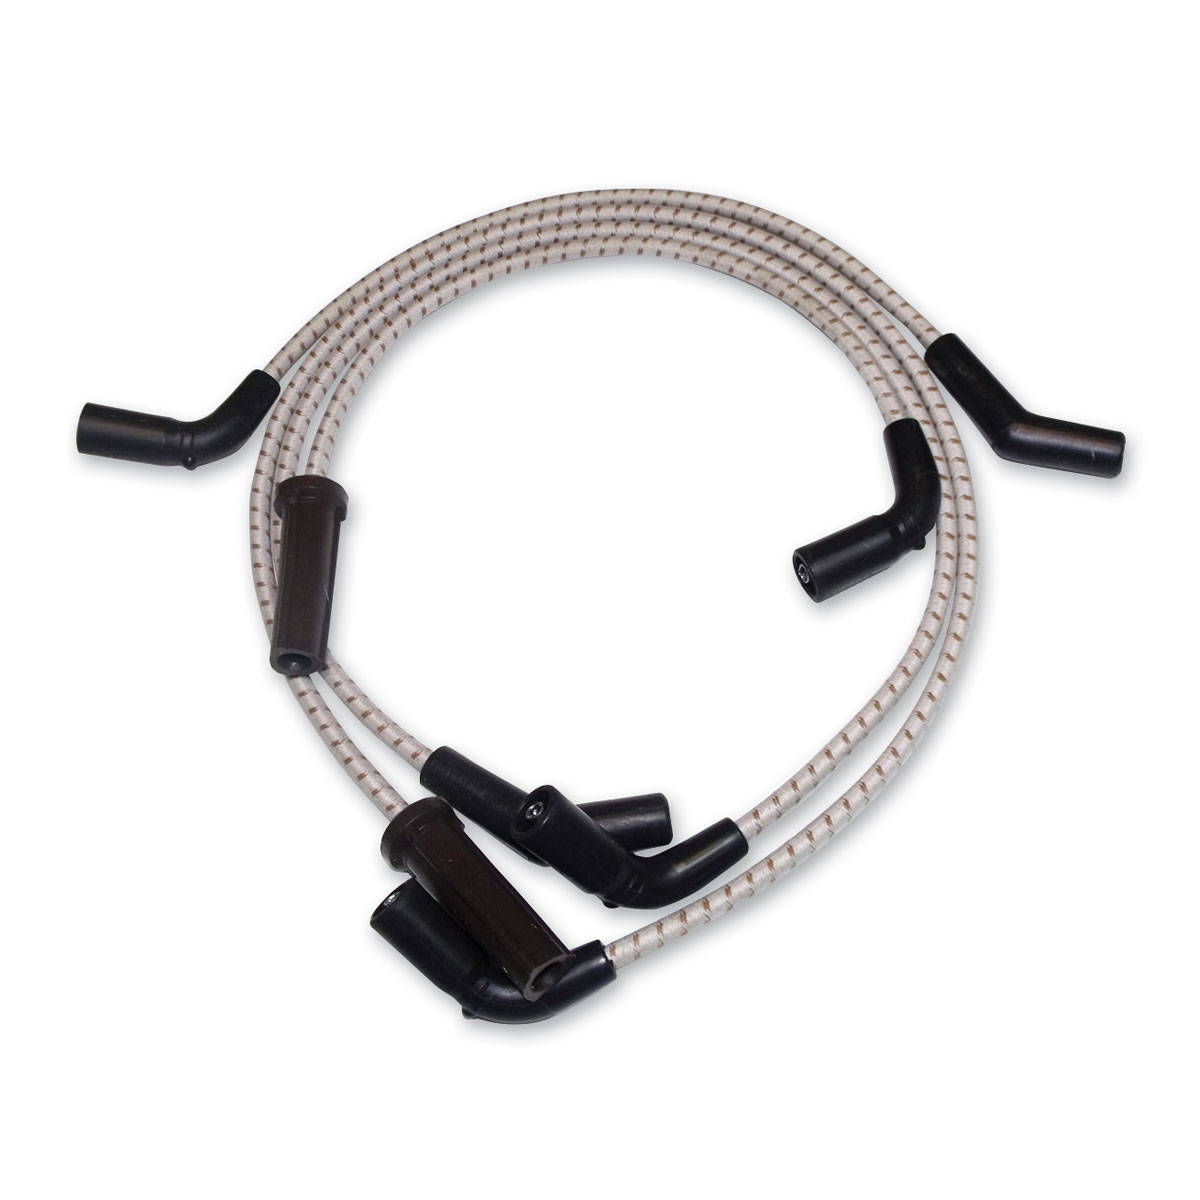 Sumax Gray with Brown Tracer Braided Cloth Spark Plug Wire Set